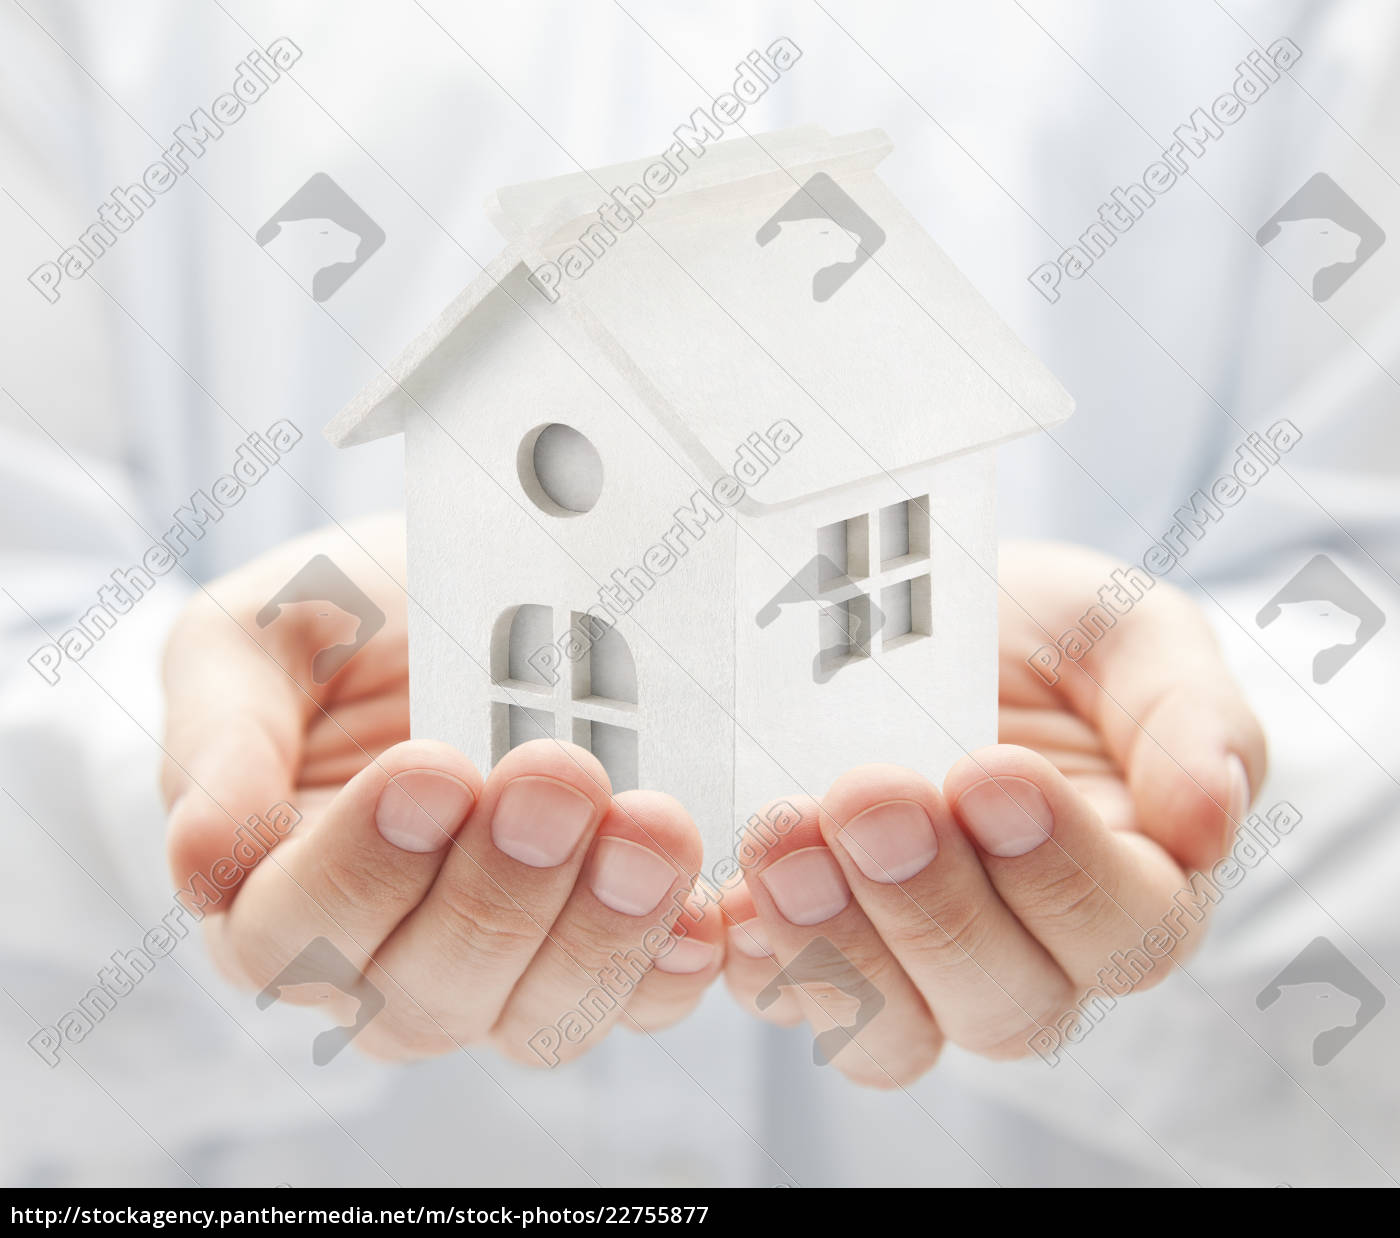 small, white, toy, house, in, hands - 22755877